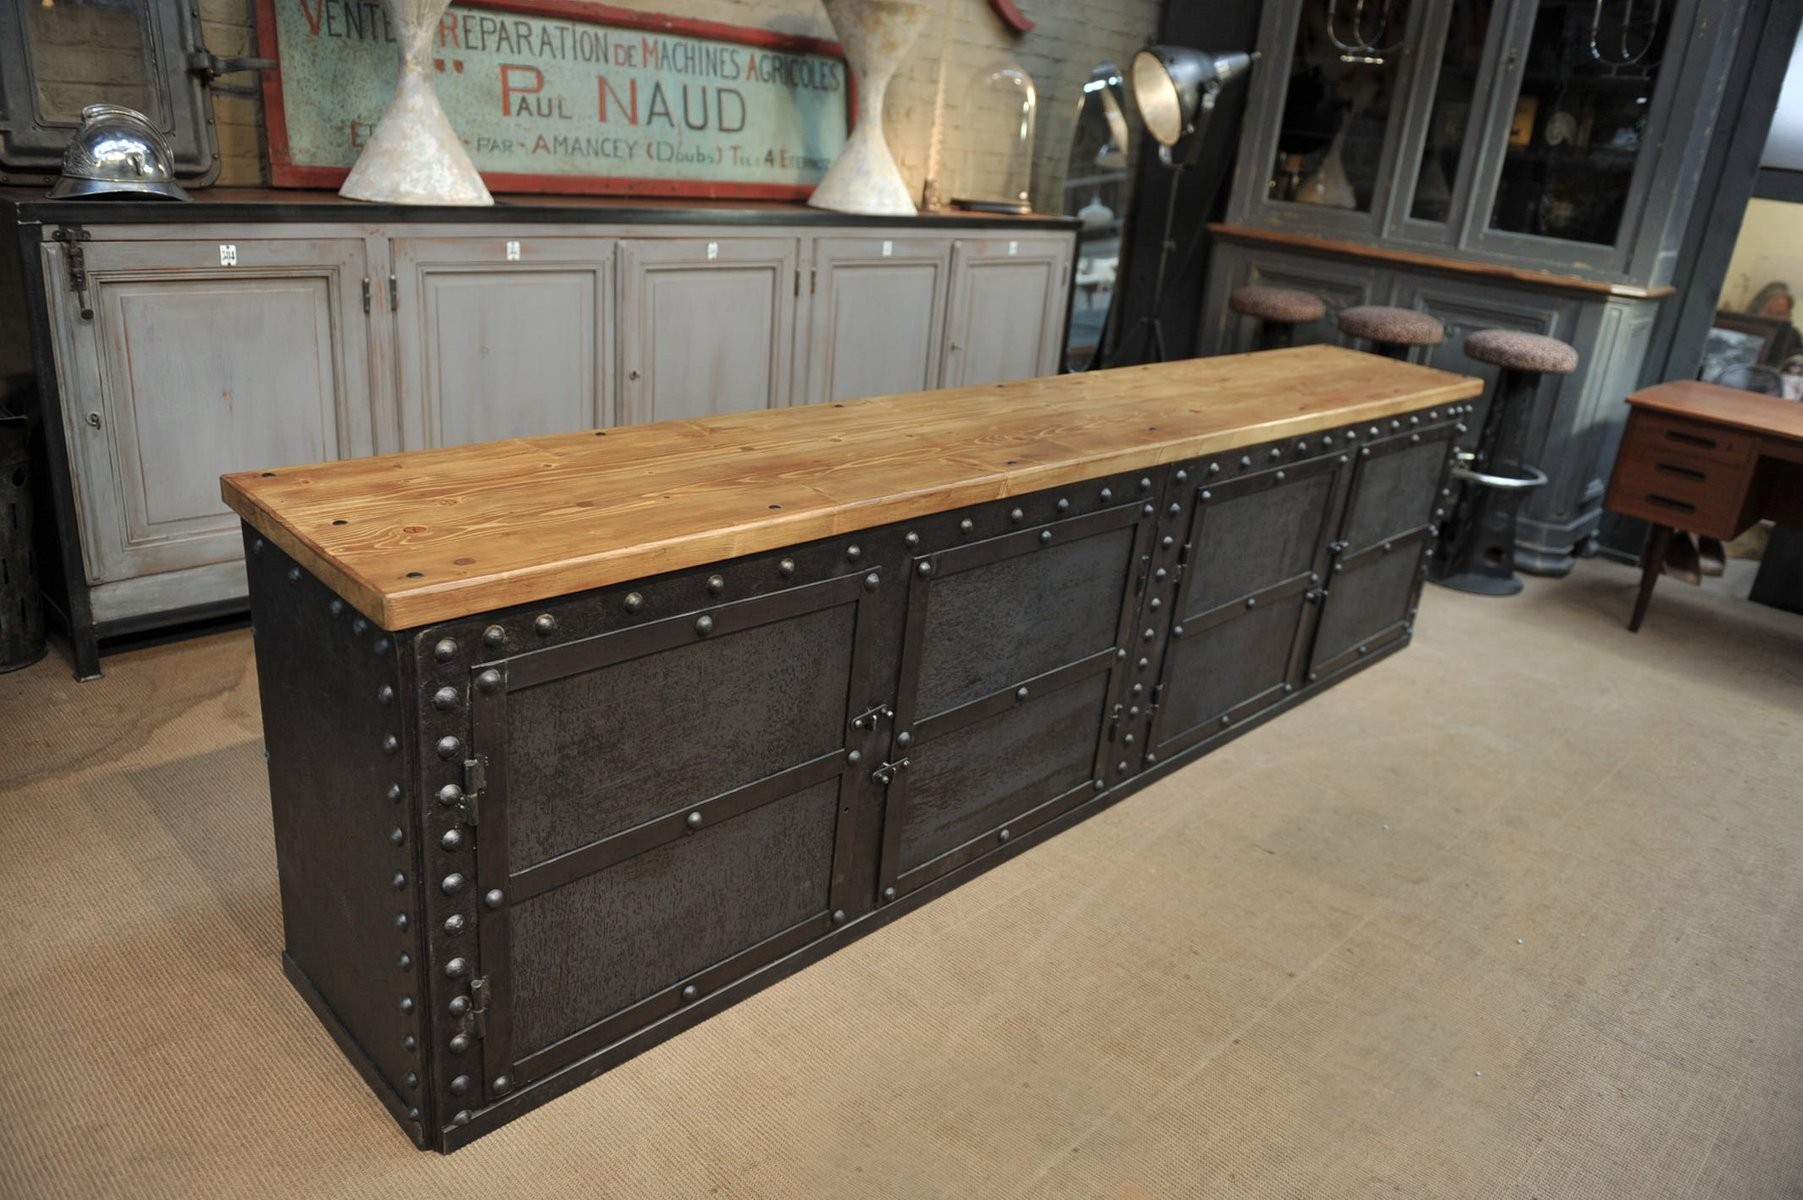 Sideboard Industrial antique riveted metal industrial sideboard 1900s for sale at